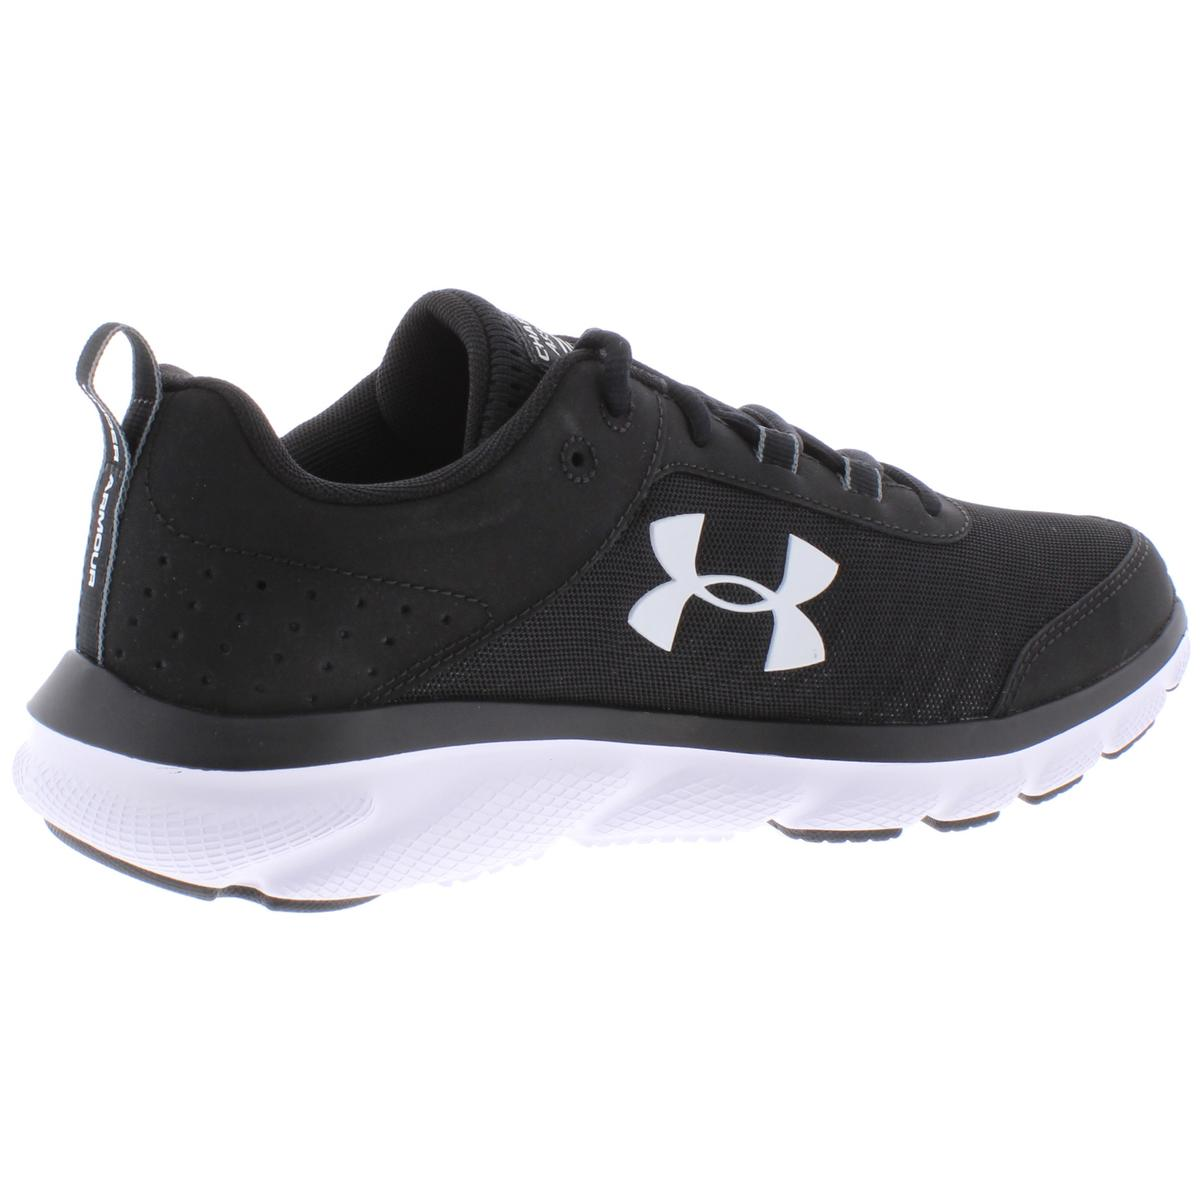 Under Armour Mens Charged Assert 8 Trainers Gym Running Shoes Sneakers BHFO 0427